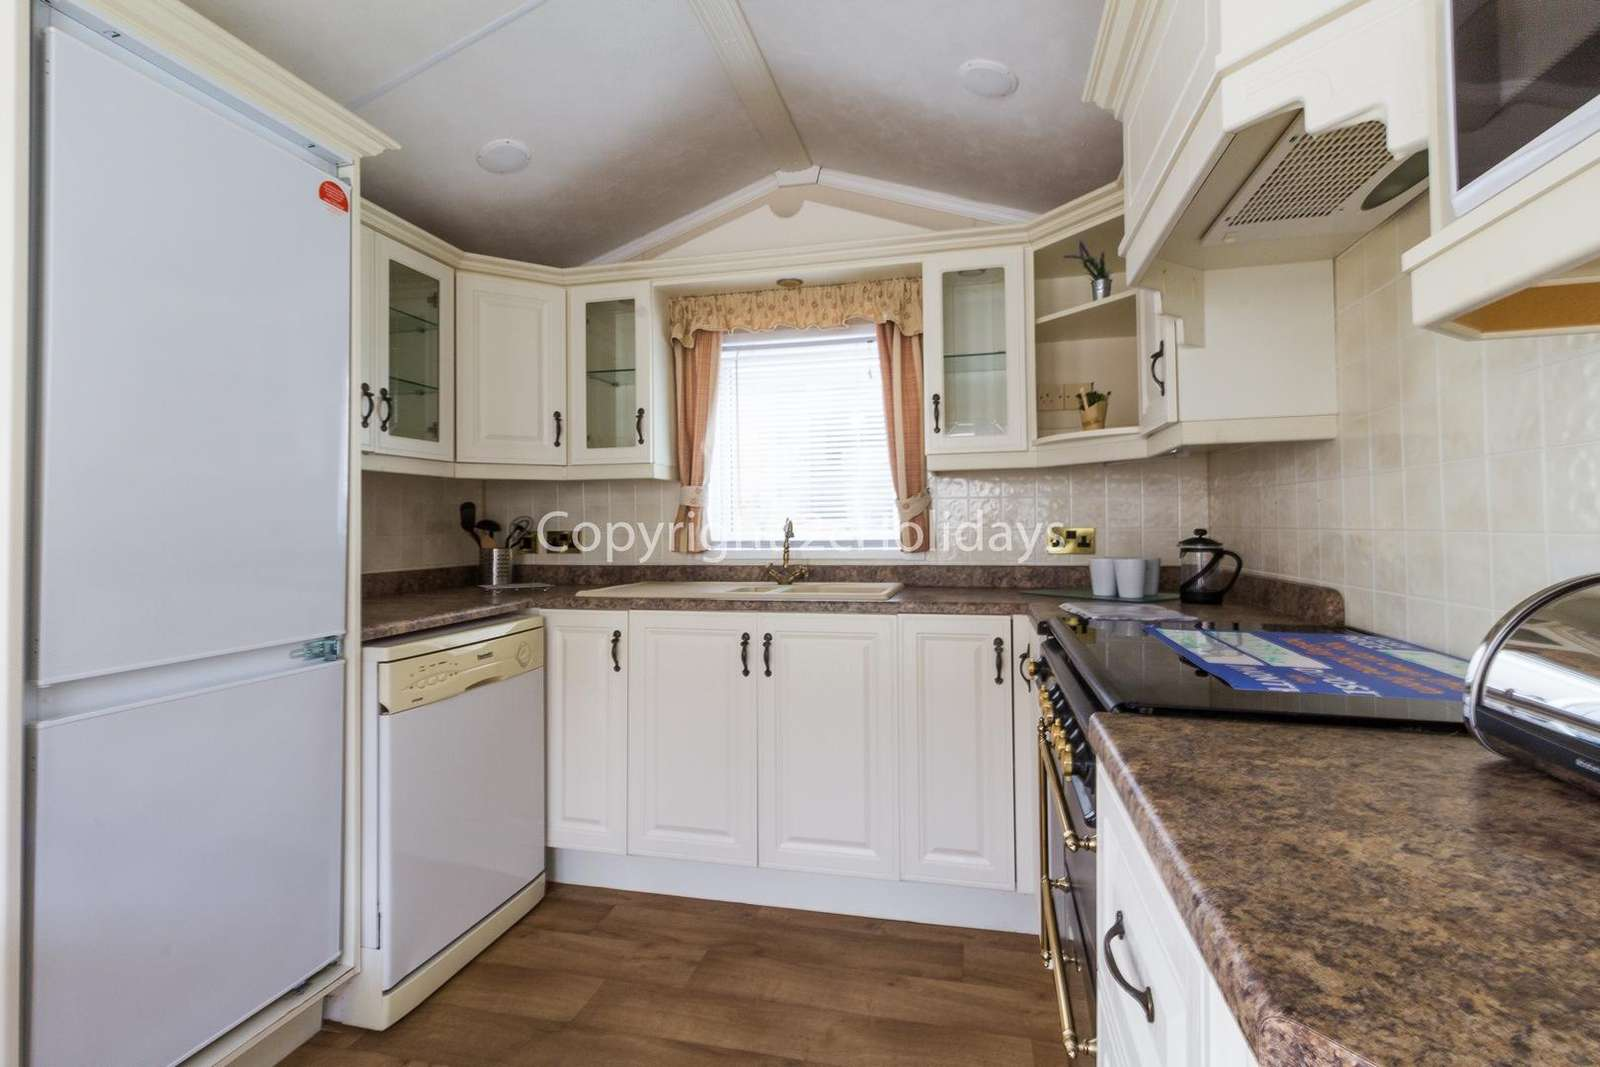 Spacious and fully equipped kitchen, perfect for self-catering breaks!